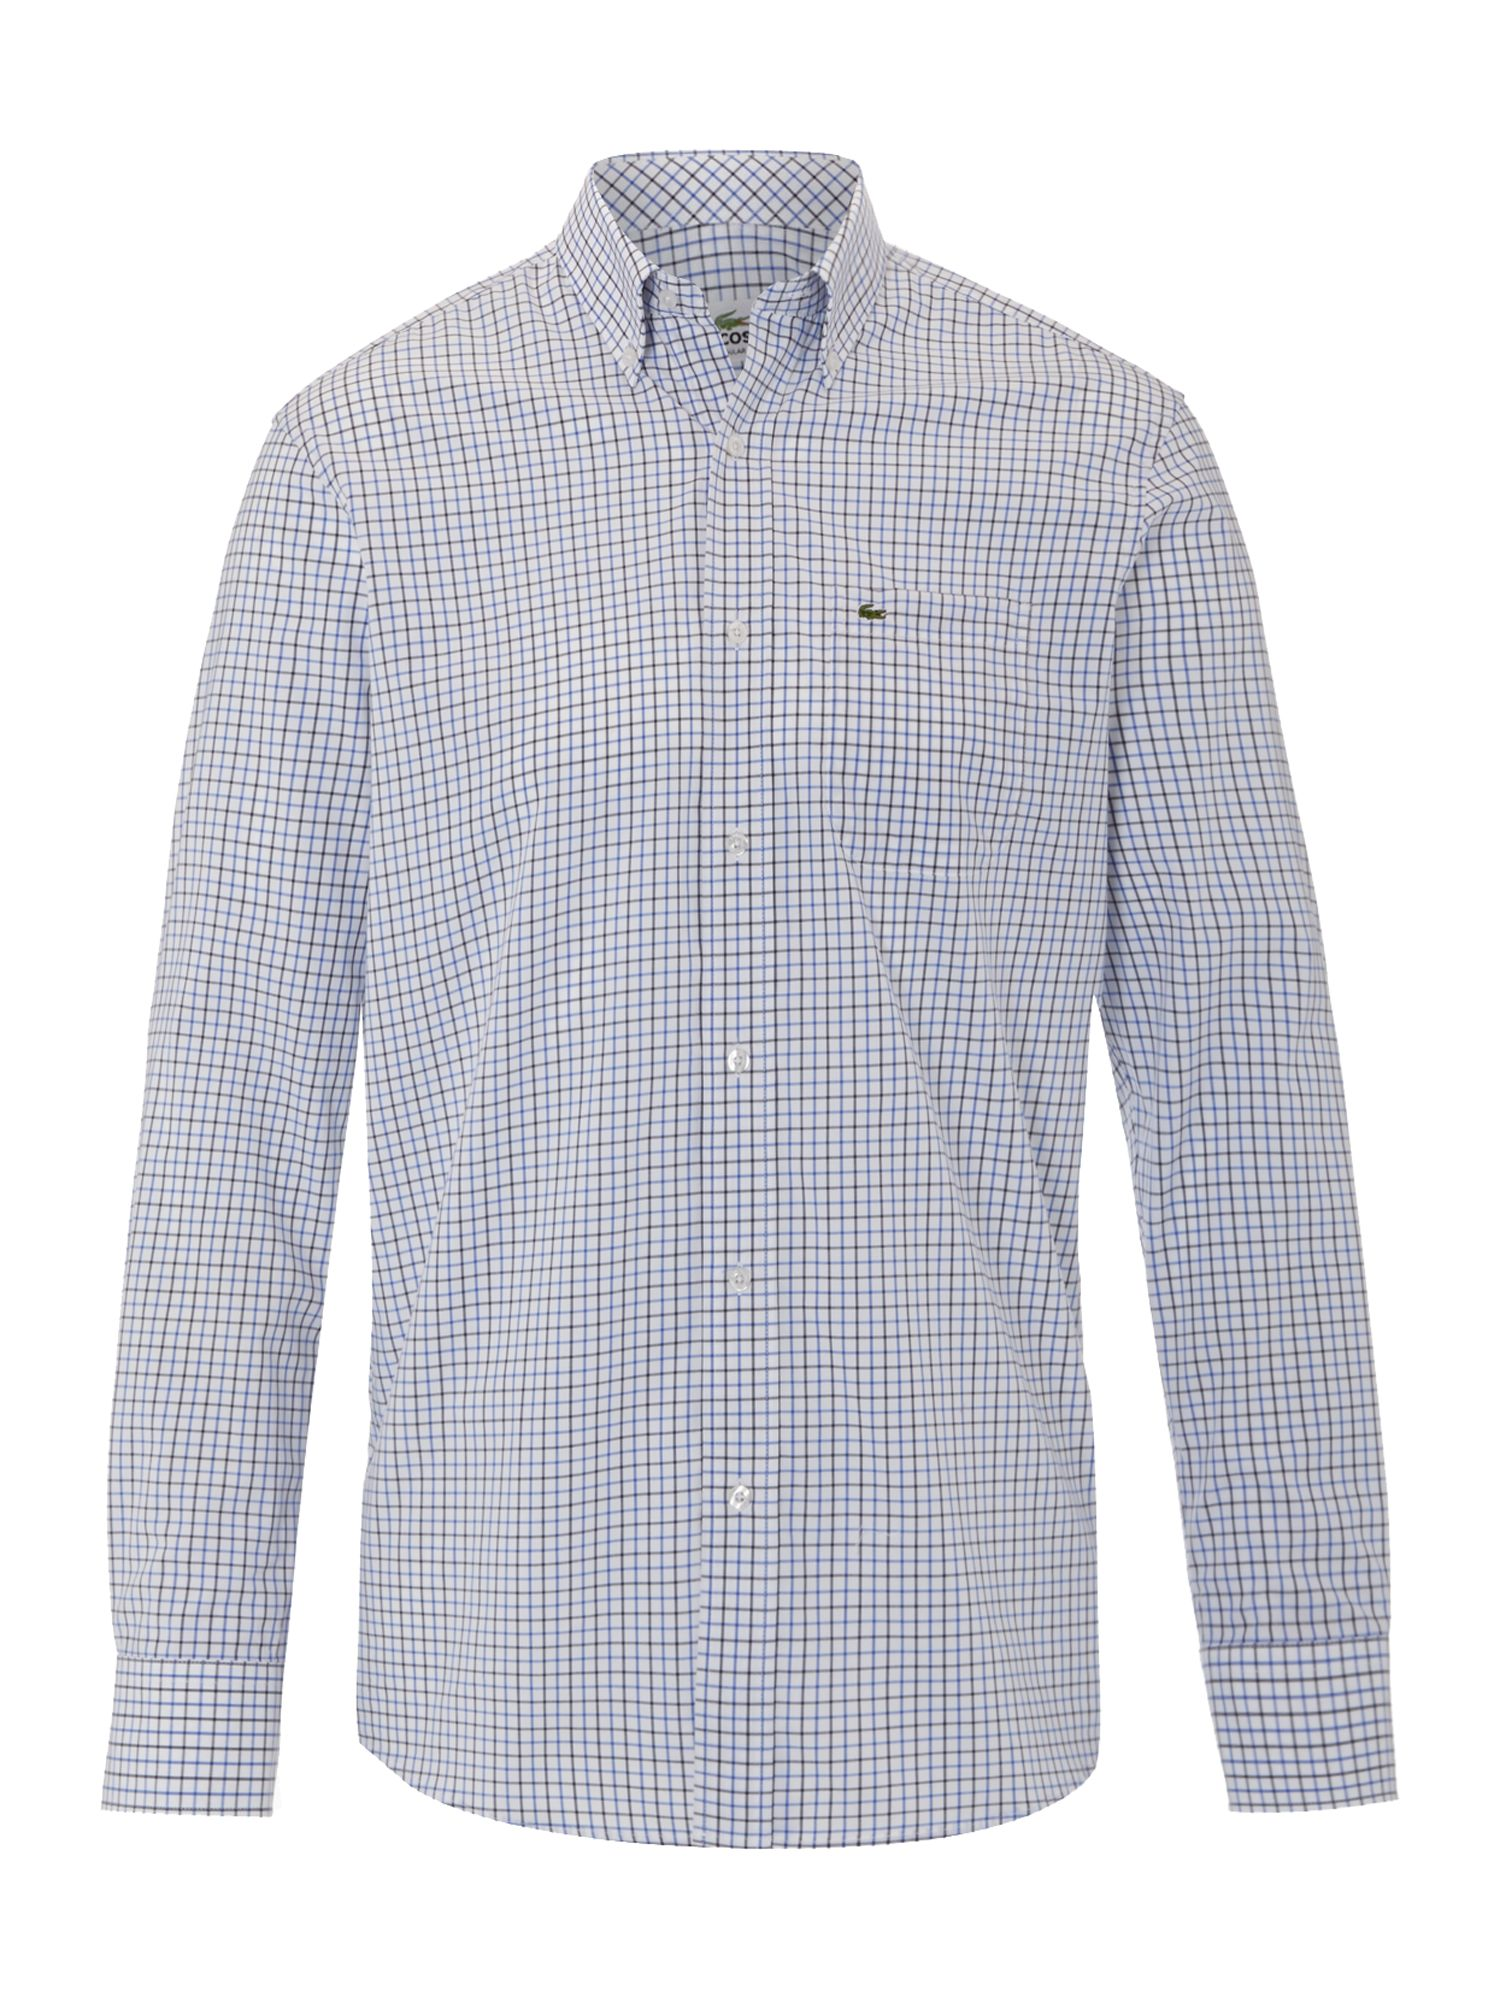 Long sleeved check shirt